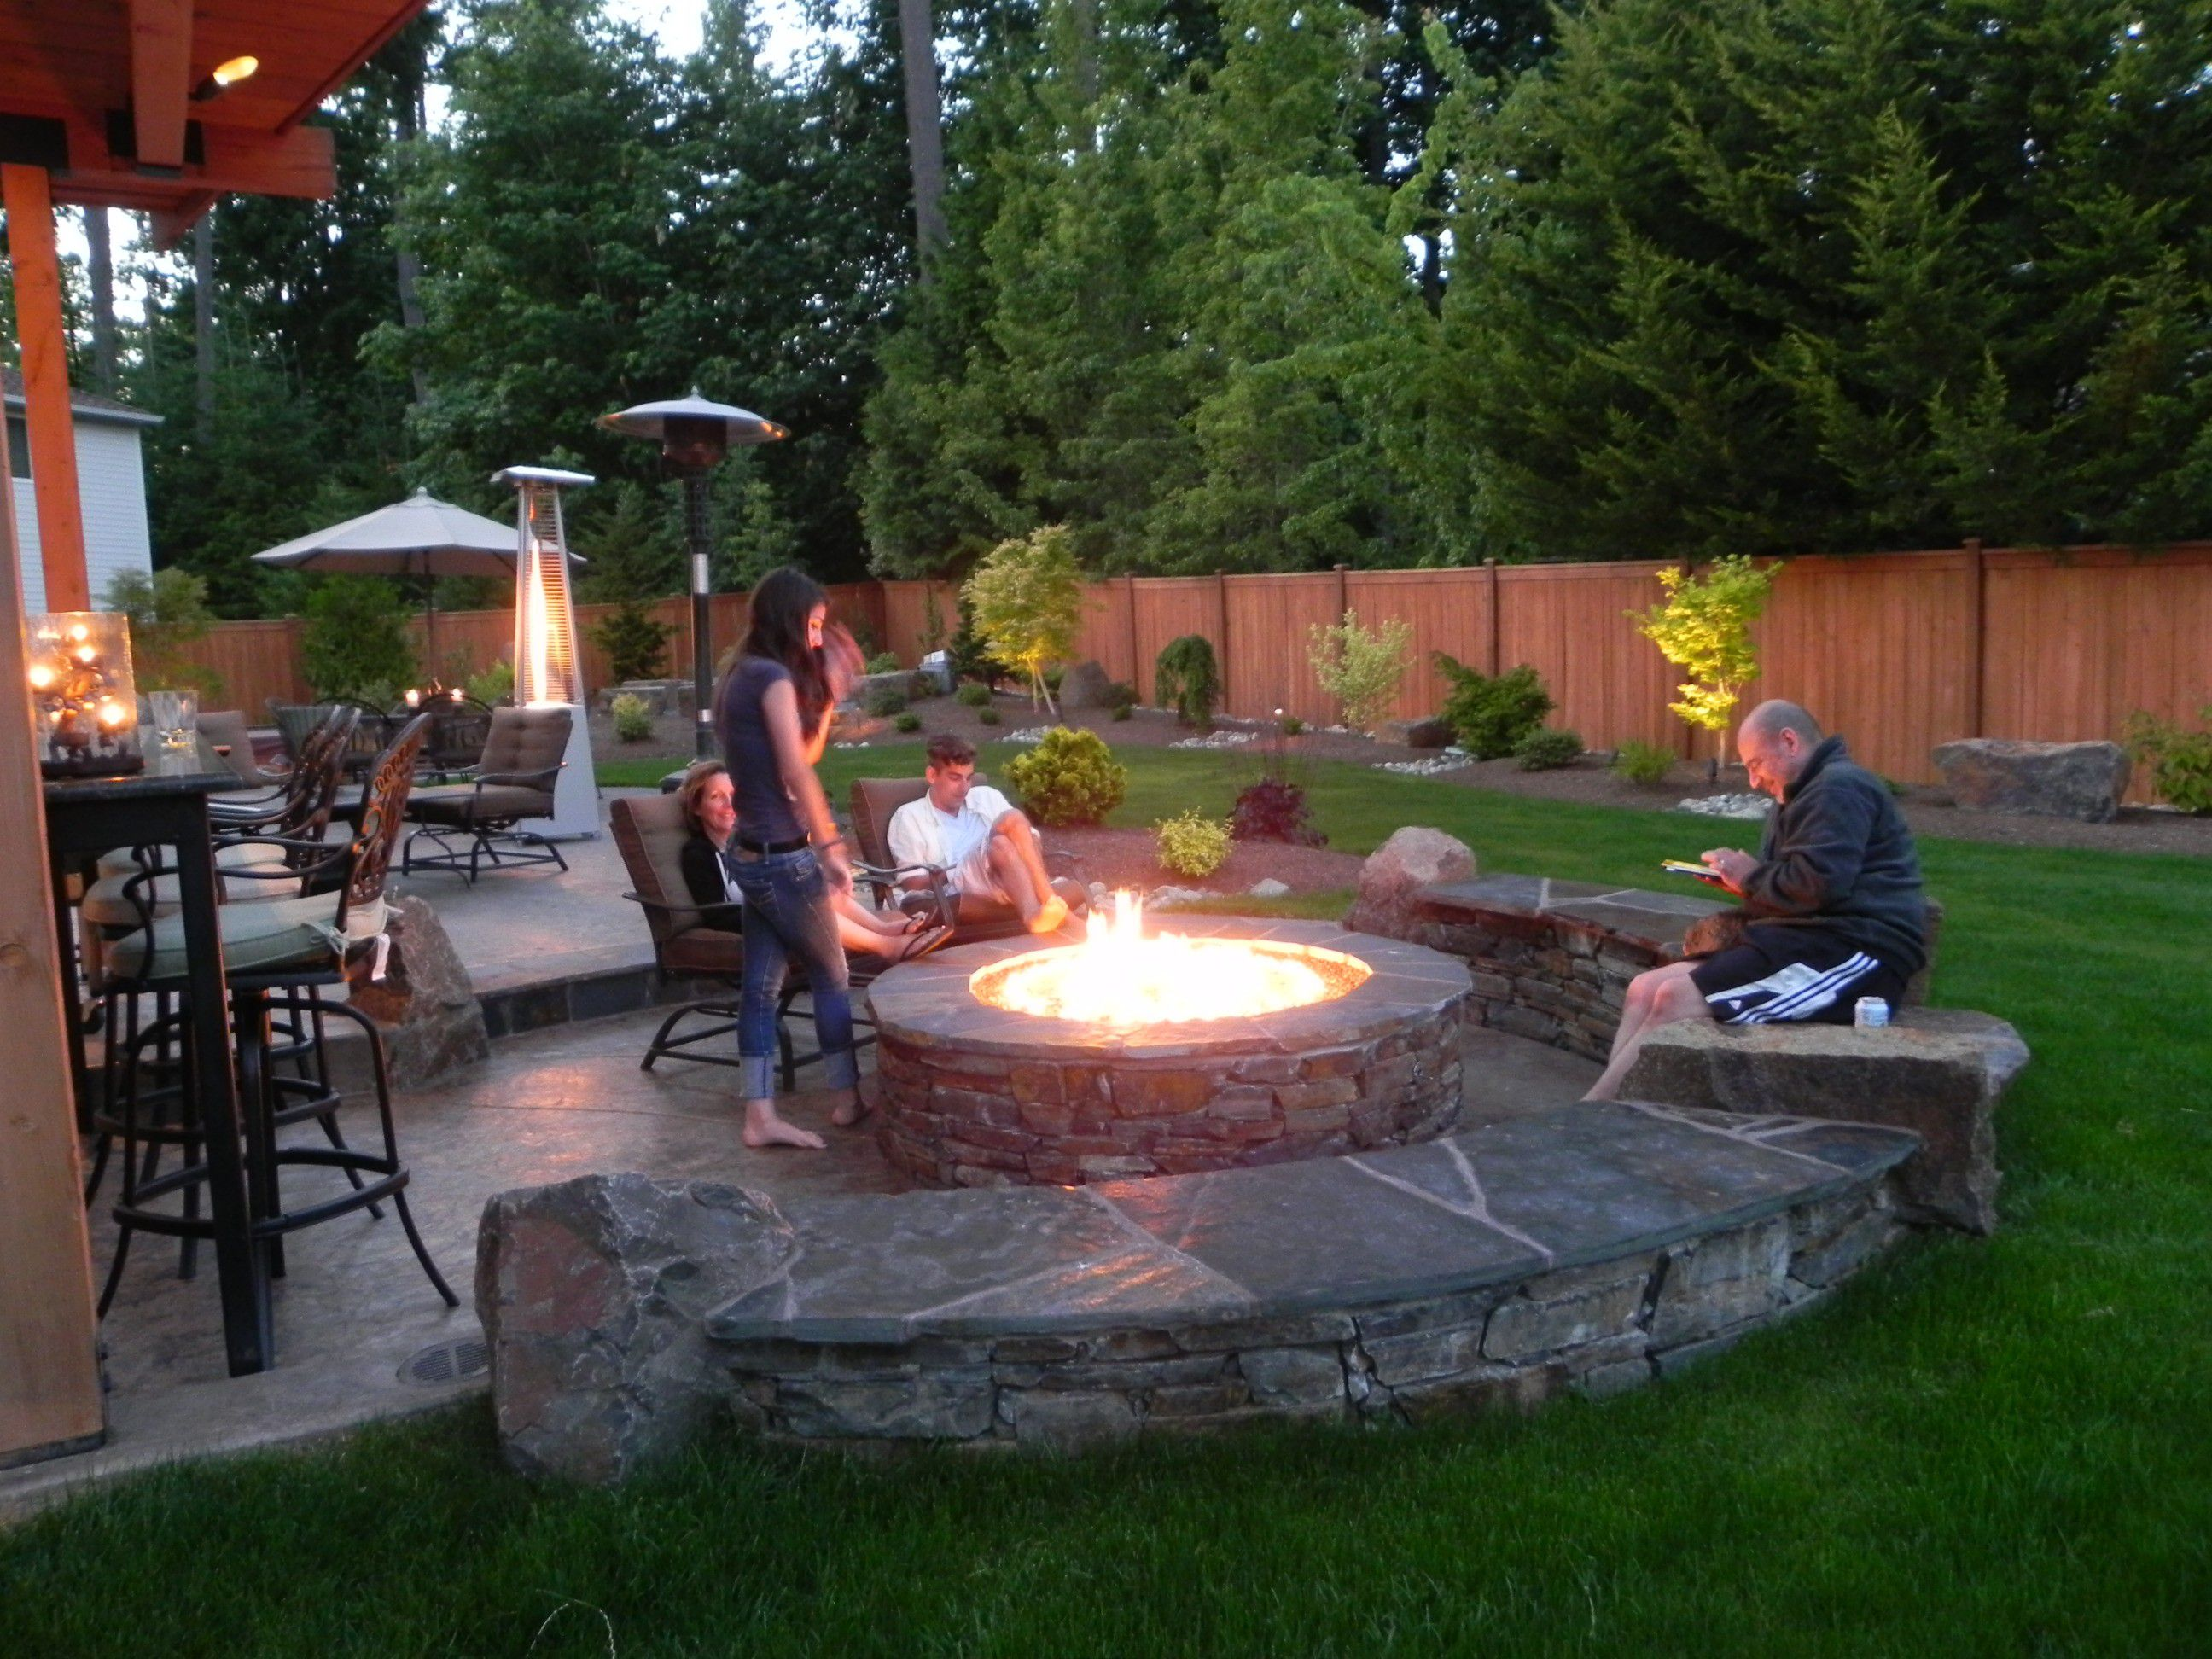 Wide Stone Fire Pit Designs for Natural Patio with Metal Chairs and Stone Bench beside Grass Area